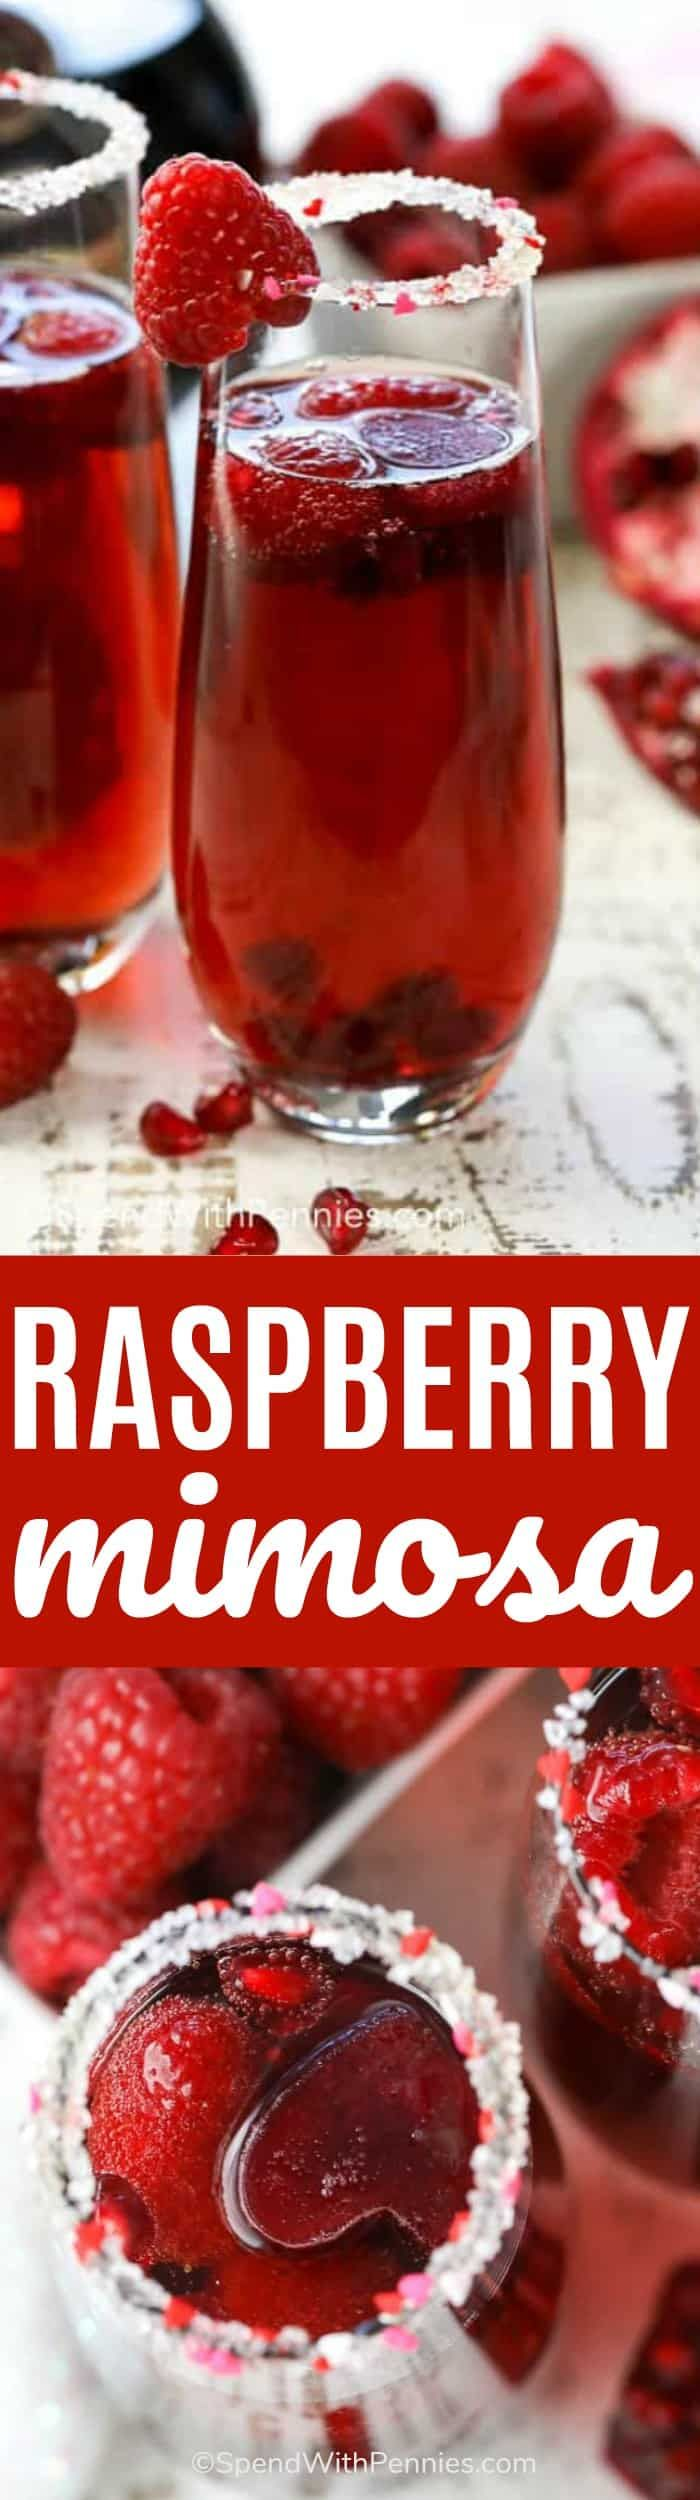 Raspberry Mimosa is made with raspberry liqueur and frosty pomegranate juice ice cubes topped with bubbly champagne or sparkling wine.This is perfect to enjoy with your hunny or to create a fun alcohol-free mocktail for the kids! #spendwithpennies #cocktail #mocktail #raspberry #easyrecipe #raspberryliquor #drinkrecipe